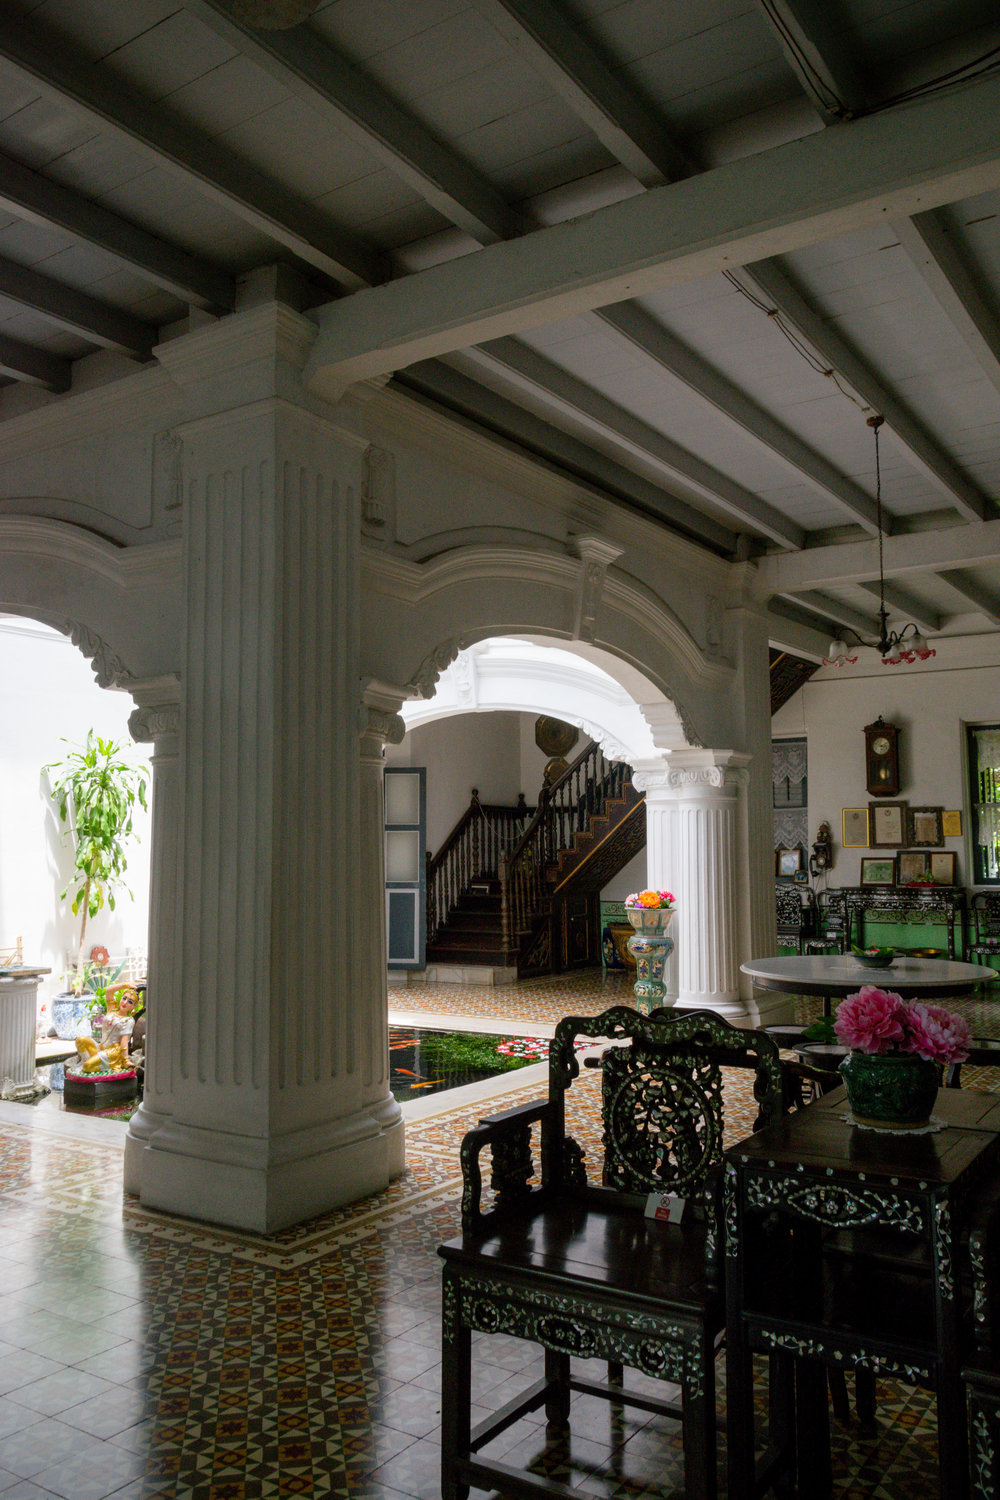 inside Baan Chinpracha